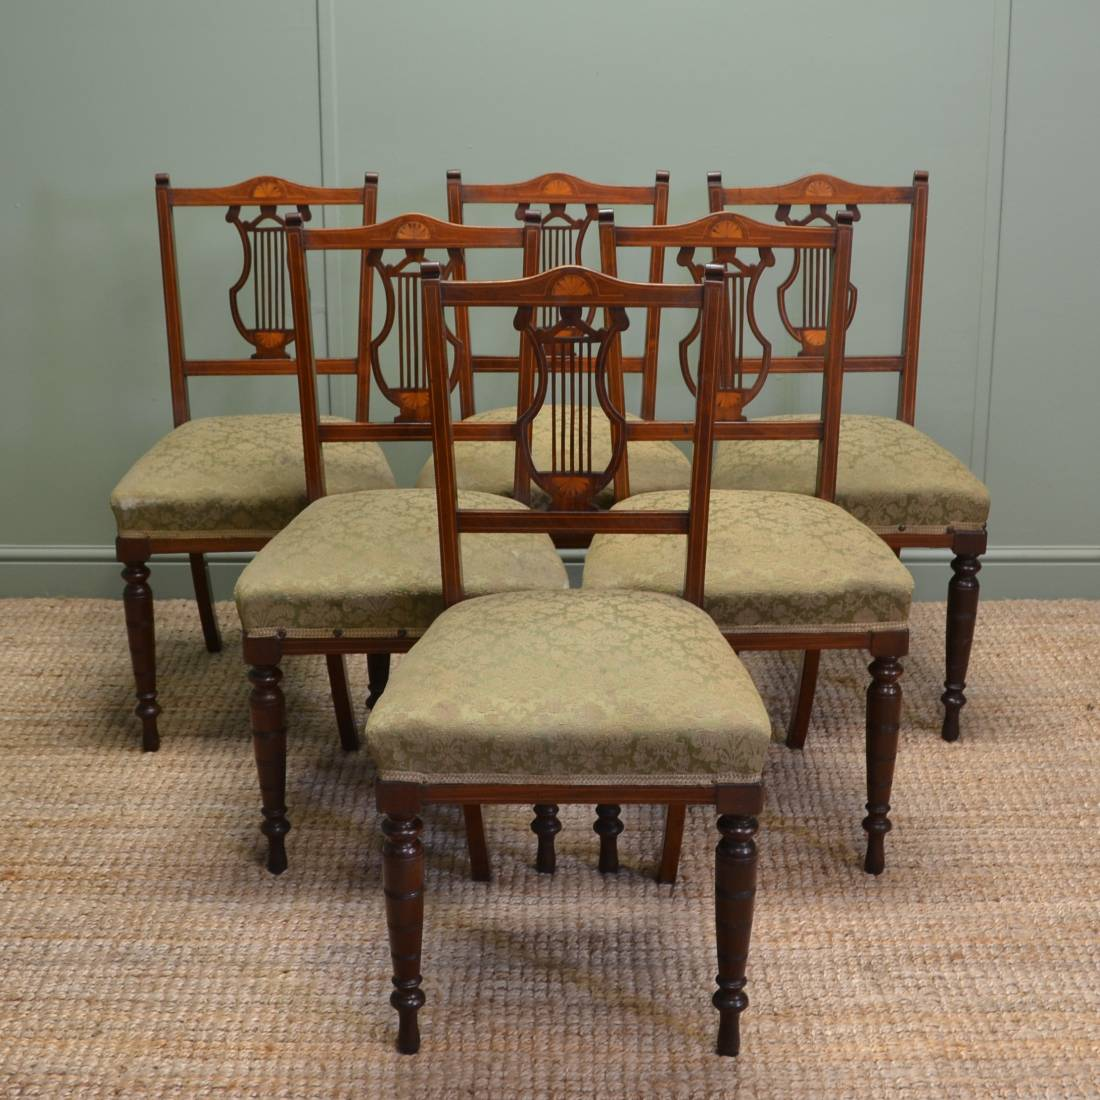 Dining Chairs Set Of 6 Set Of 6 Inlaid Antique Edwardian Mahogany Dining Chairs